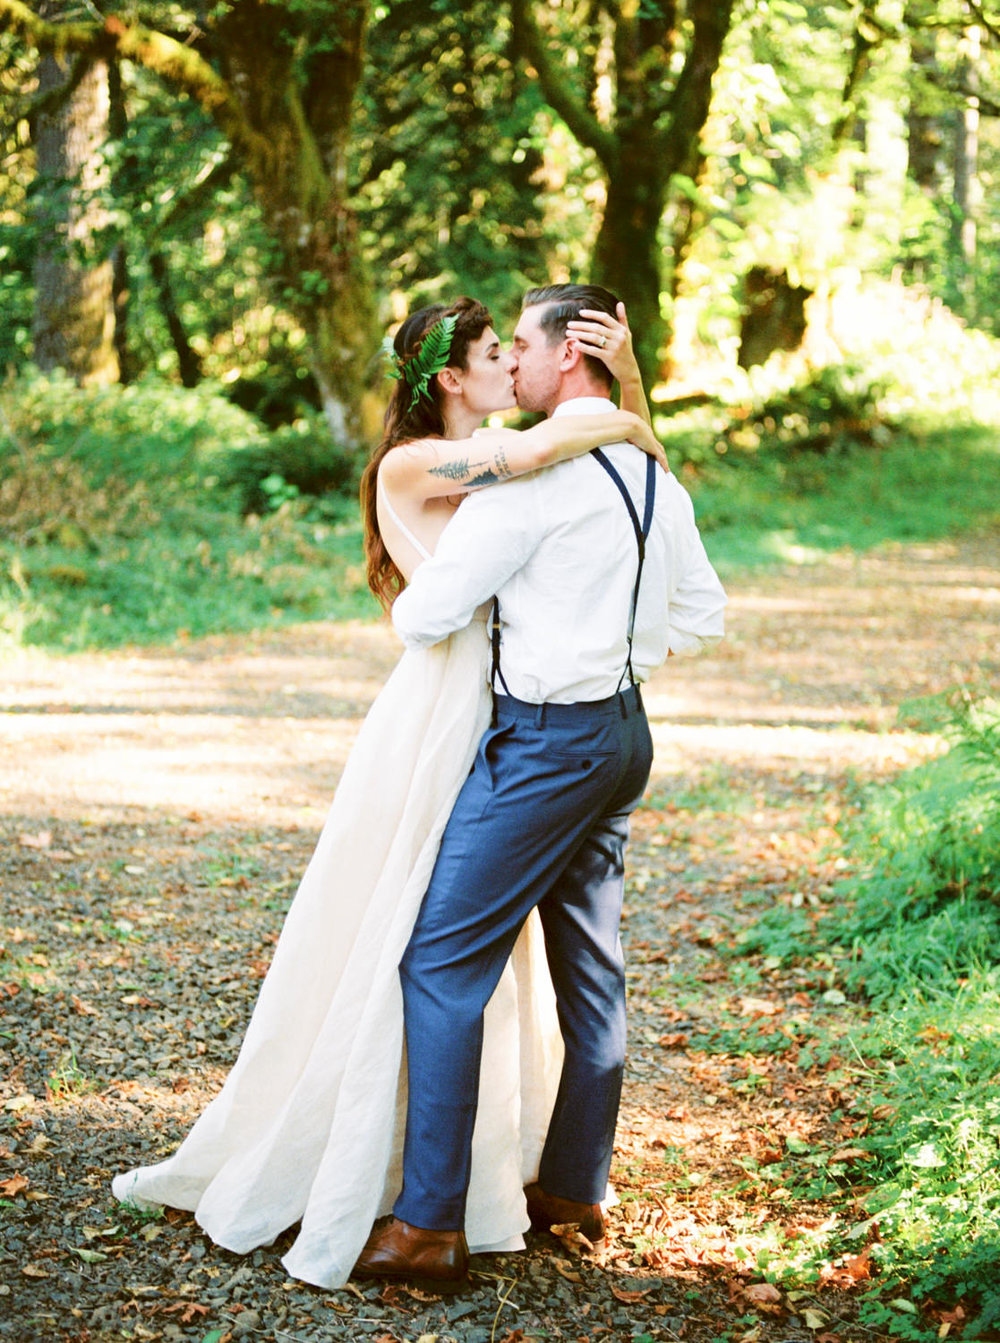 Brian Whitt Photography-Portland-Wedding-Photographer-9620_12.jpg